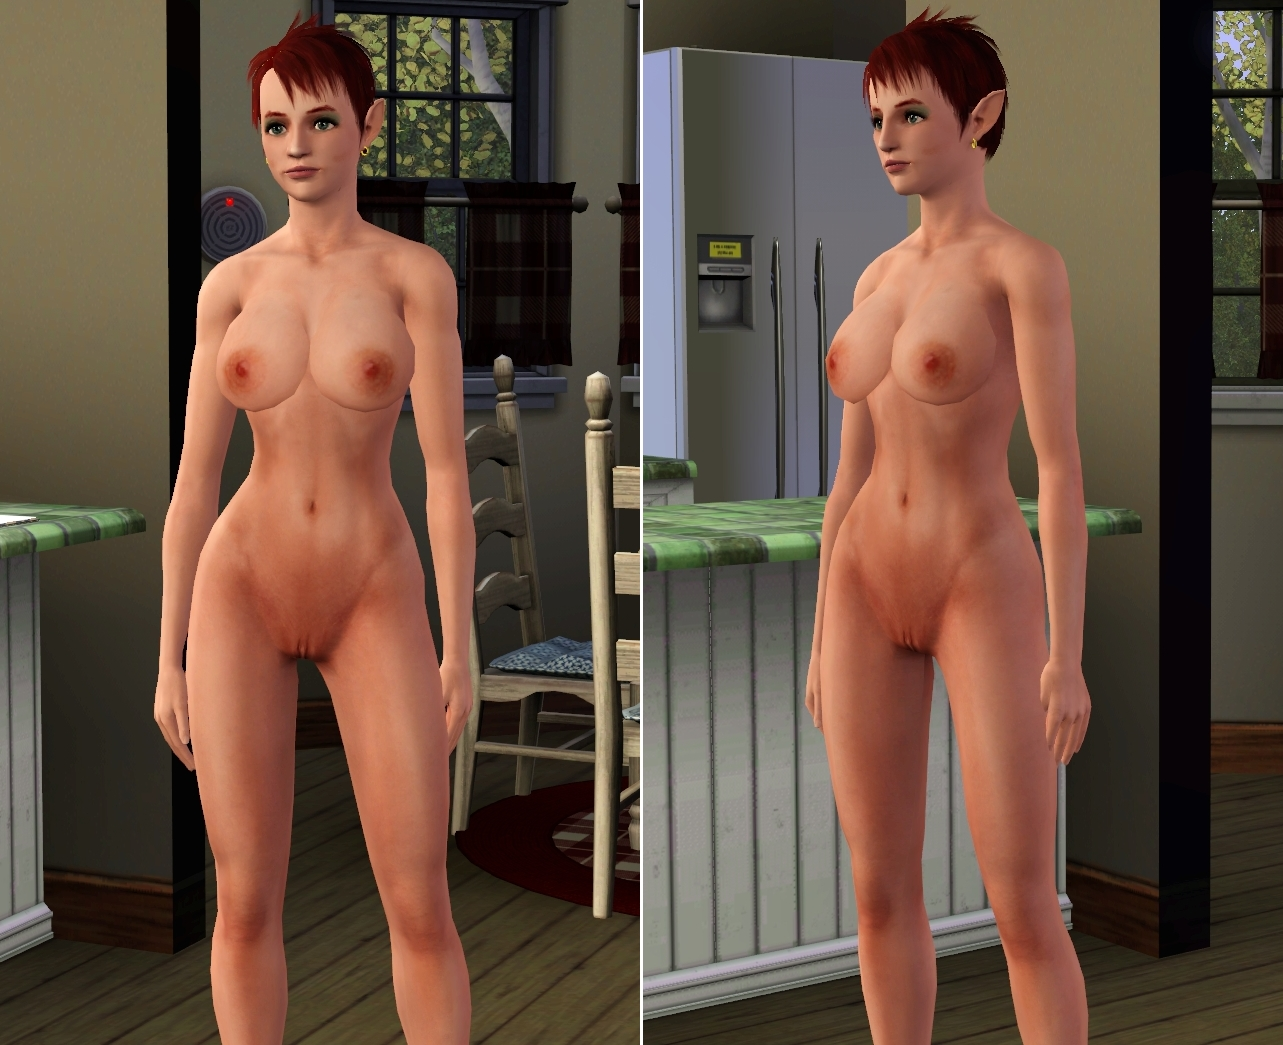 The sims 3 naked skins and sex  erotica photos